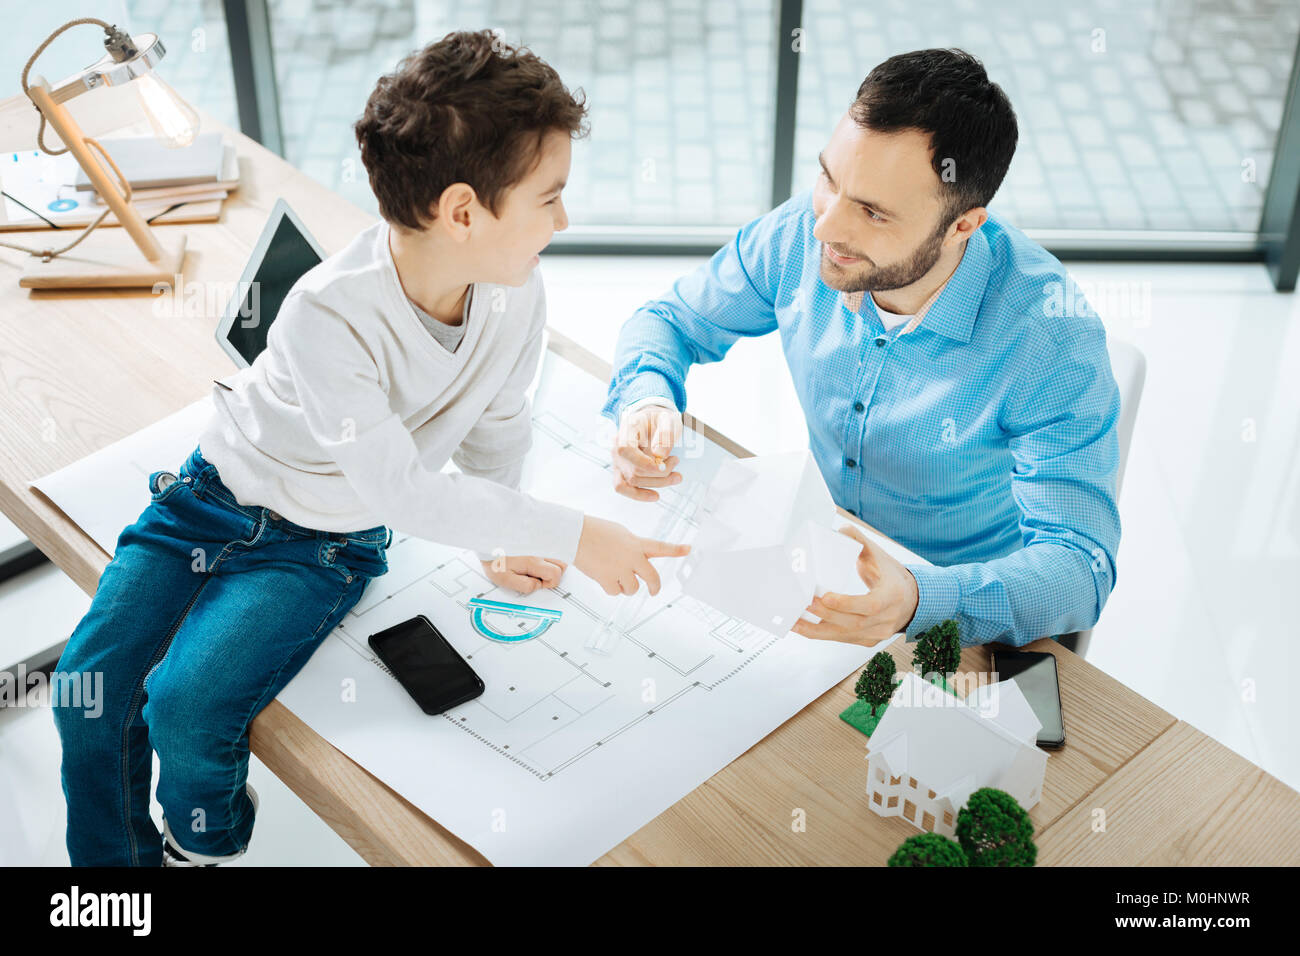 Adorable boy asking his father about house models - Stock Image